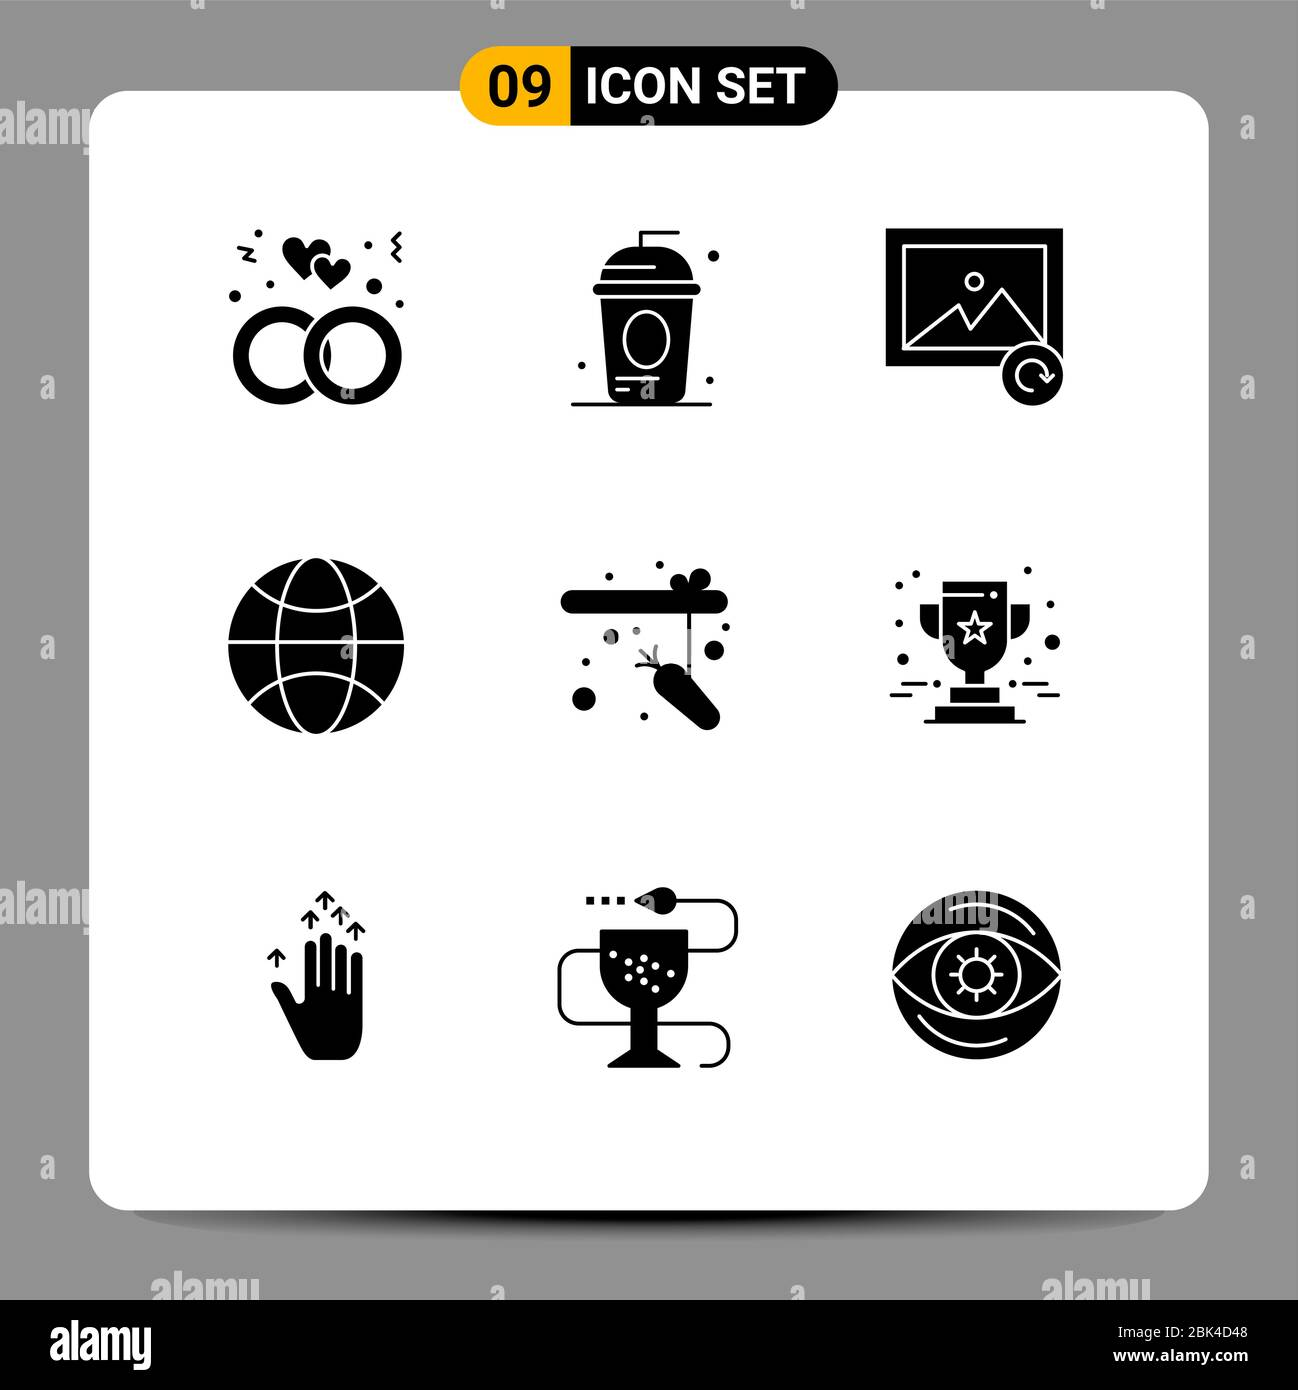 9 Universal Solid Glyphs Set for Web and Mobile Applications rod, fishing, independece, science, globe Editable Vector Design Elements Stock Vector